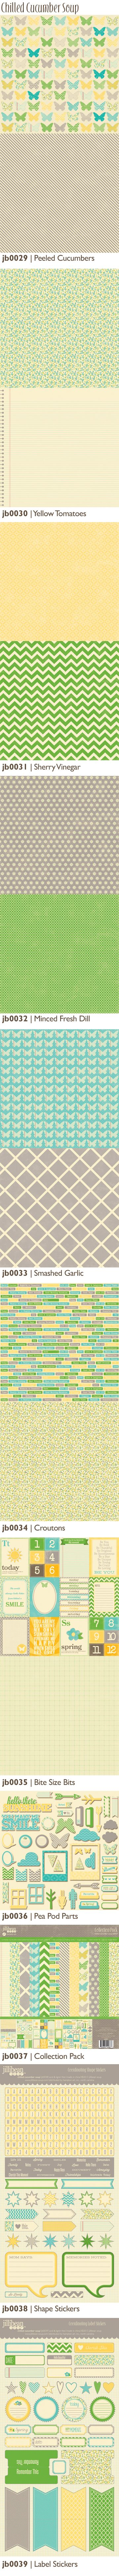 another brand new collection: ChilledCucumberSoup_JillibeanSoup So dreamy and versatile, can use for my son or daughter!